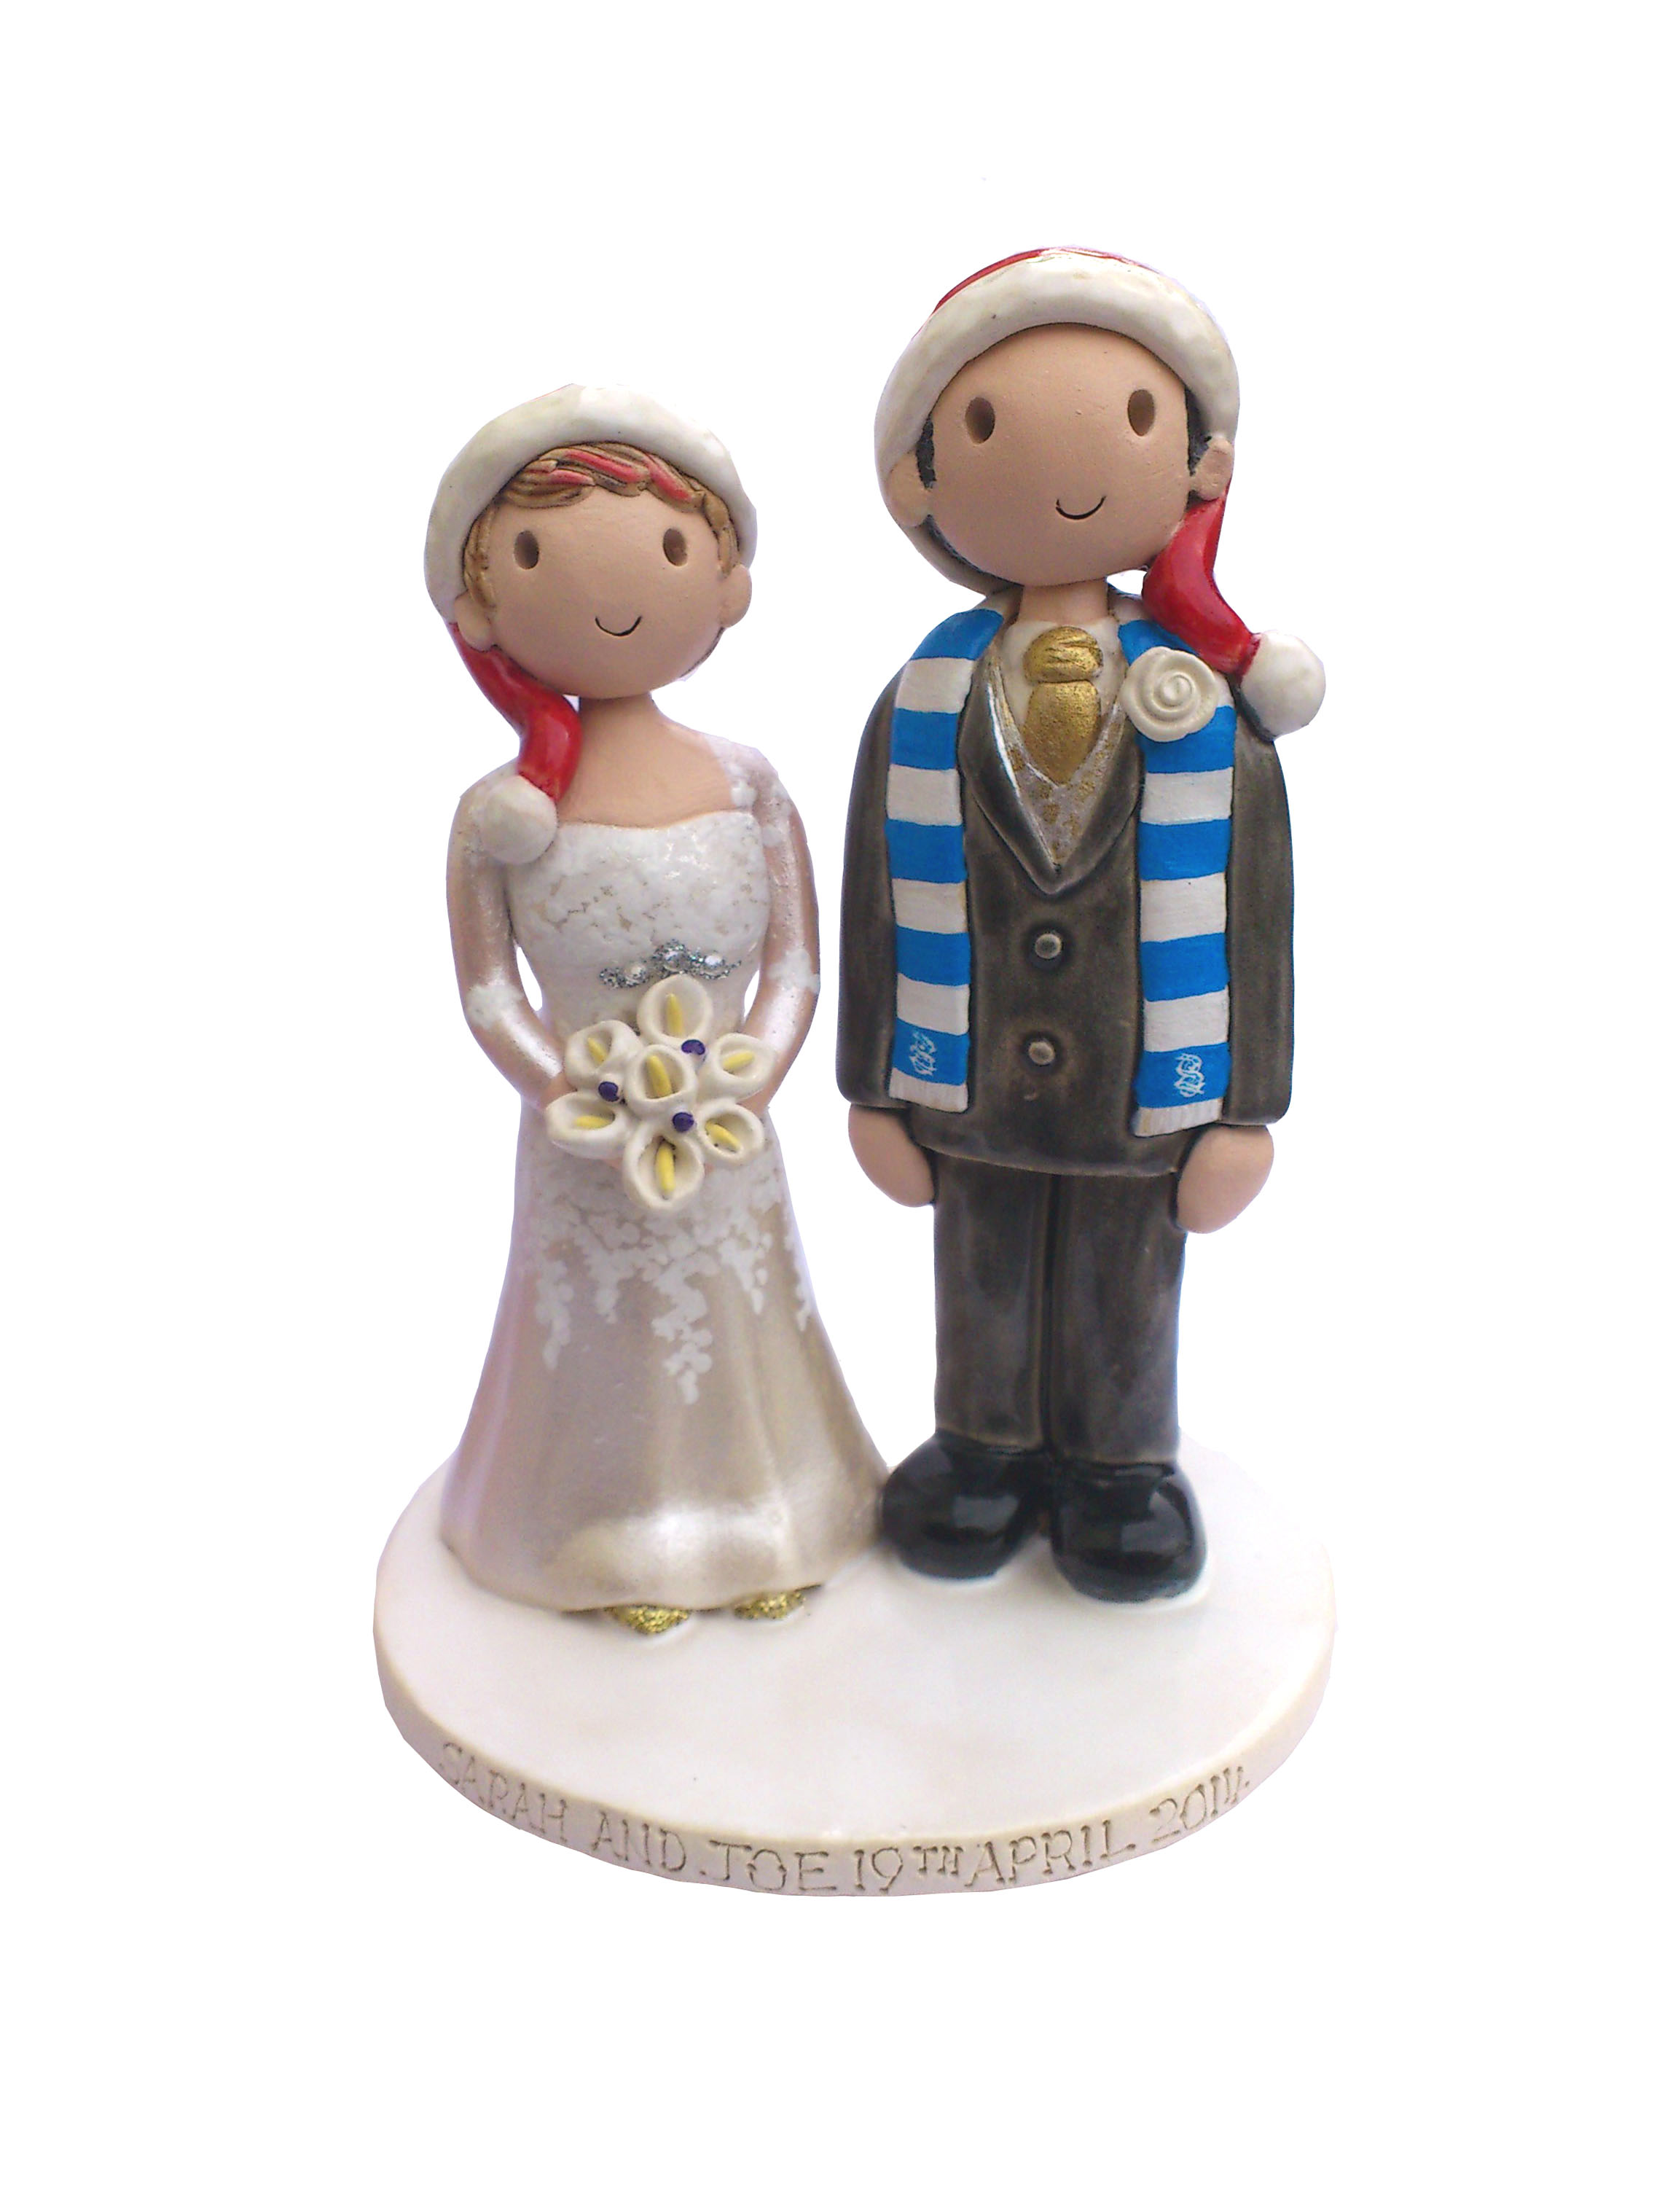 christmas wedding cake toppers uk wedding cake toppers gallery examples of toppers we 12844